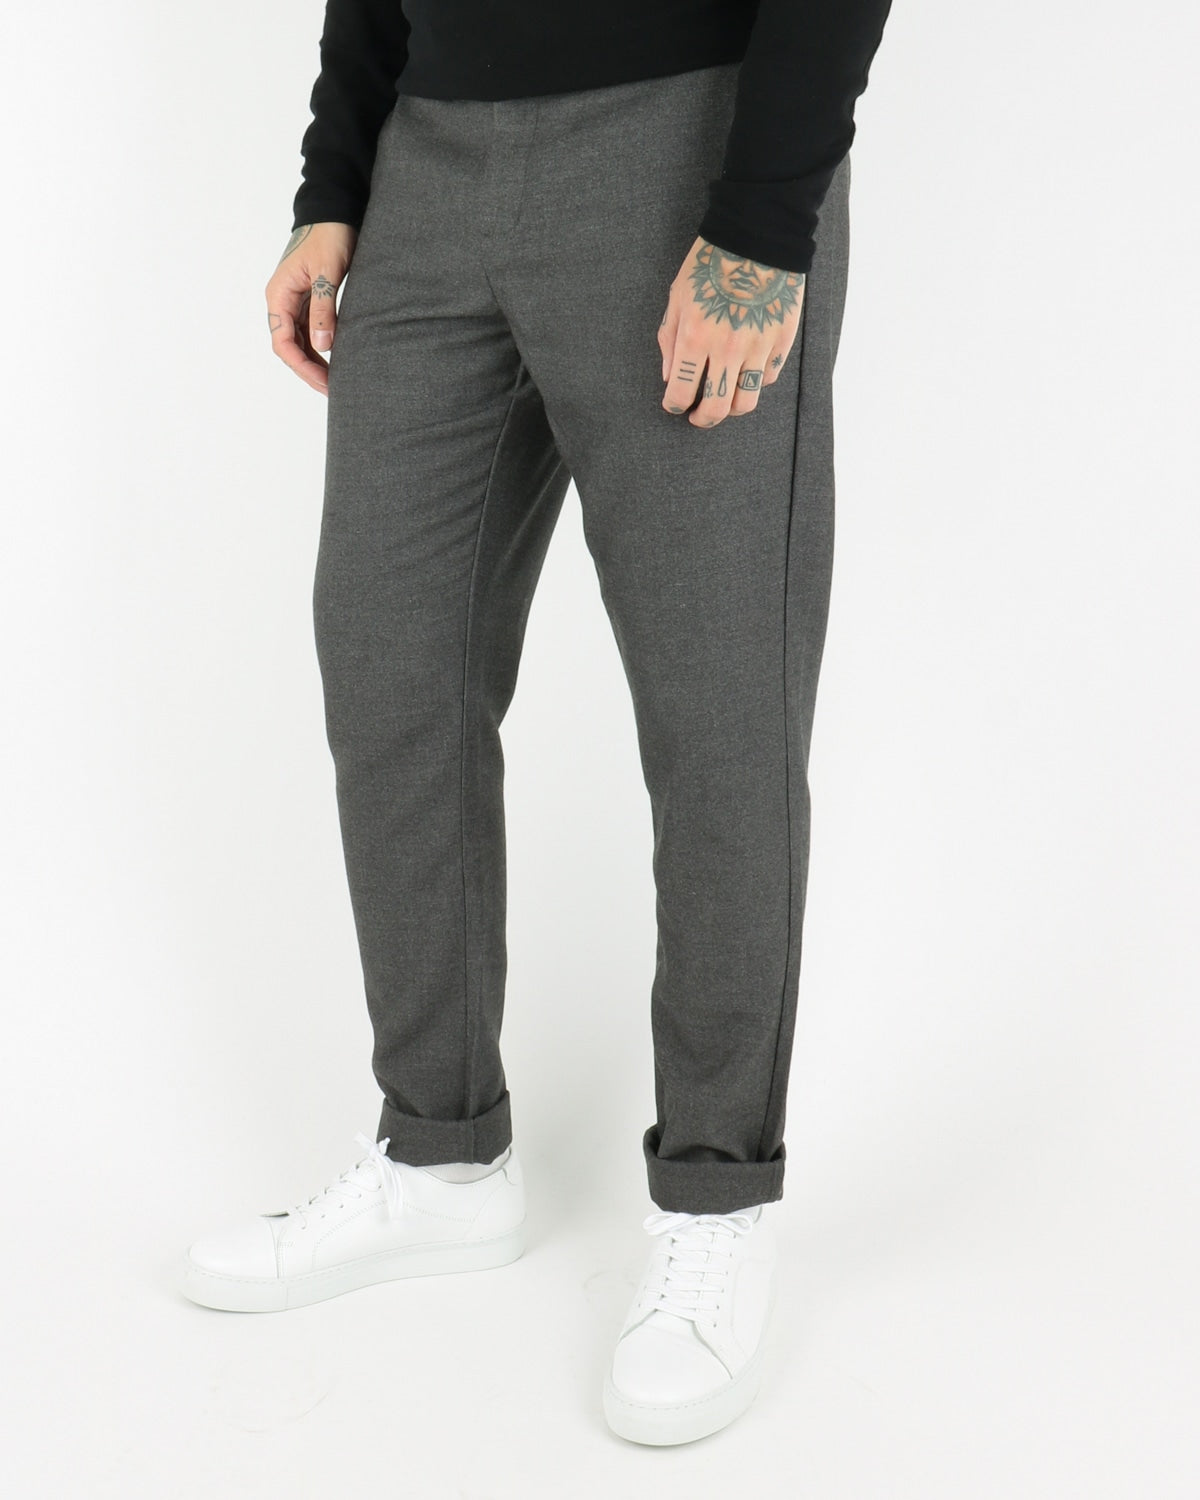 Janzik Pants, dark grey melange